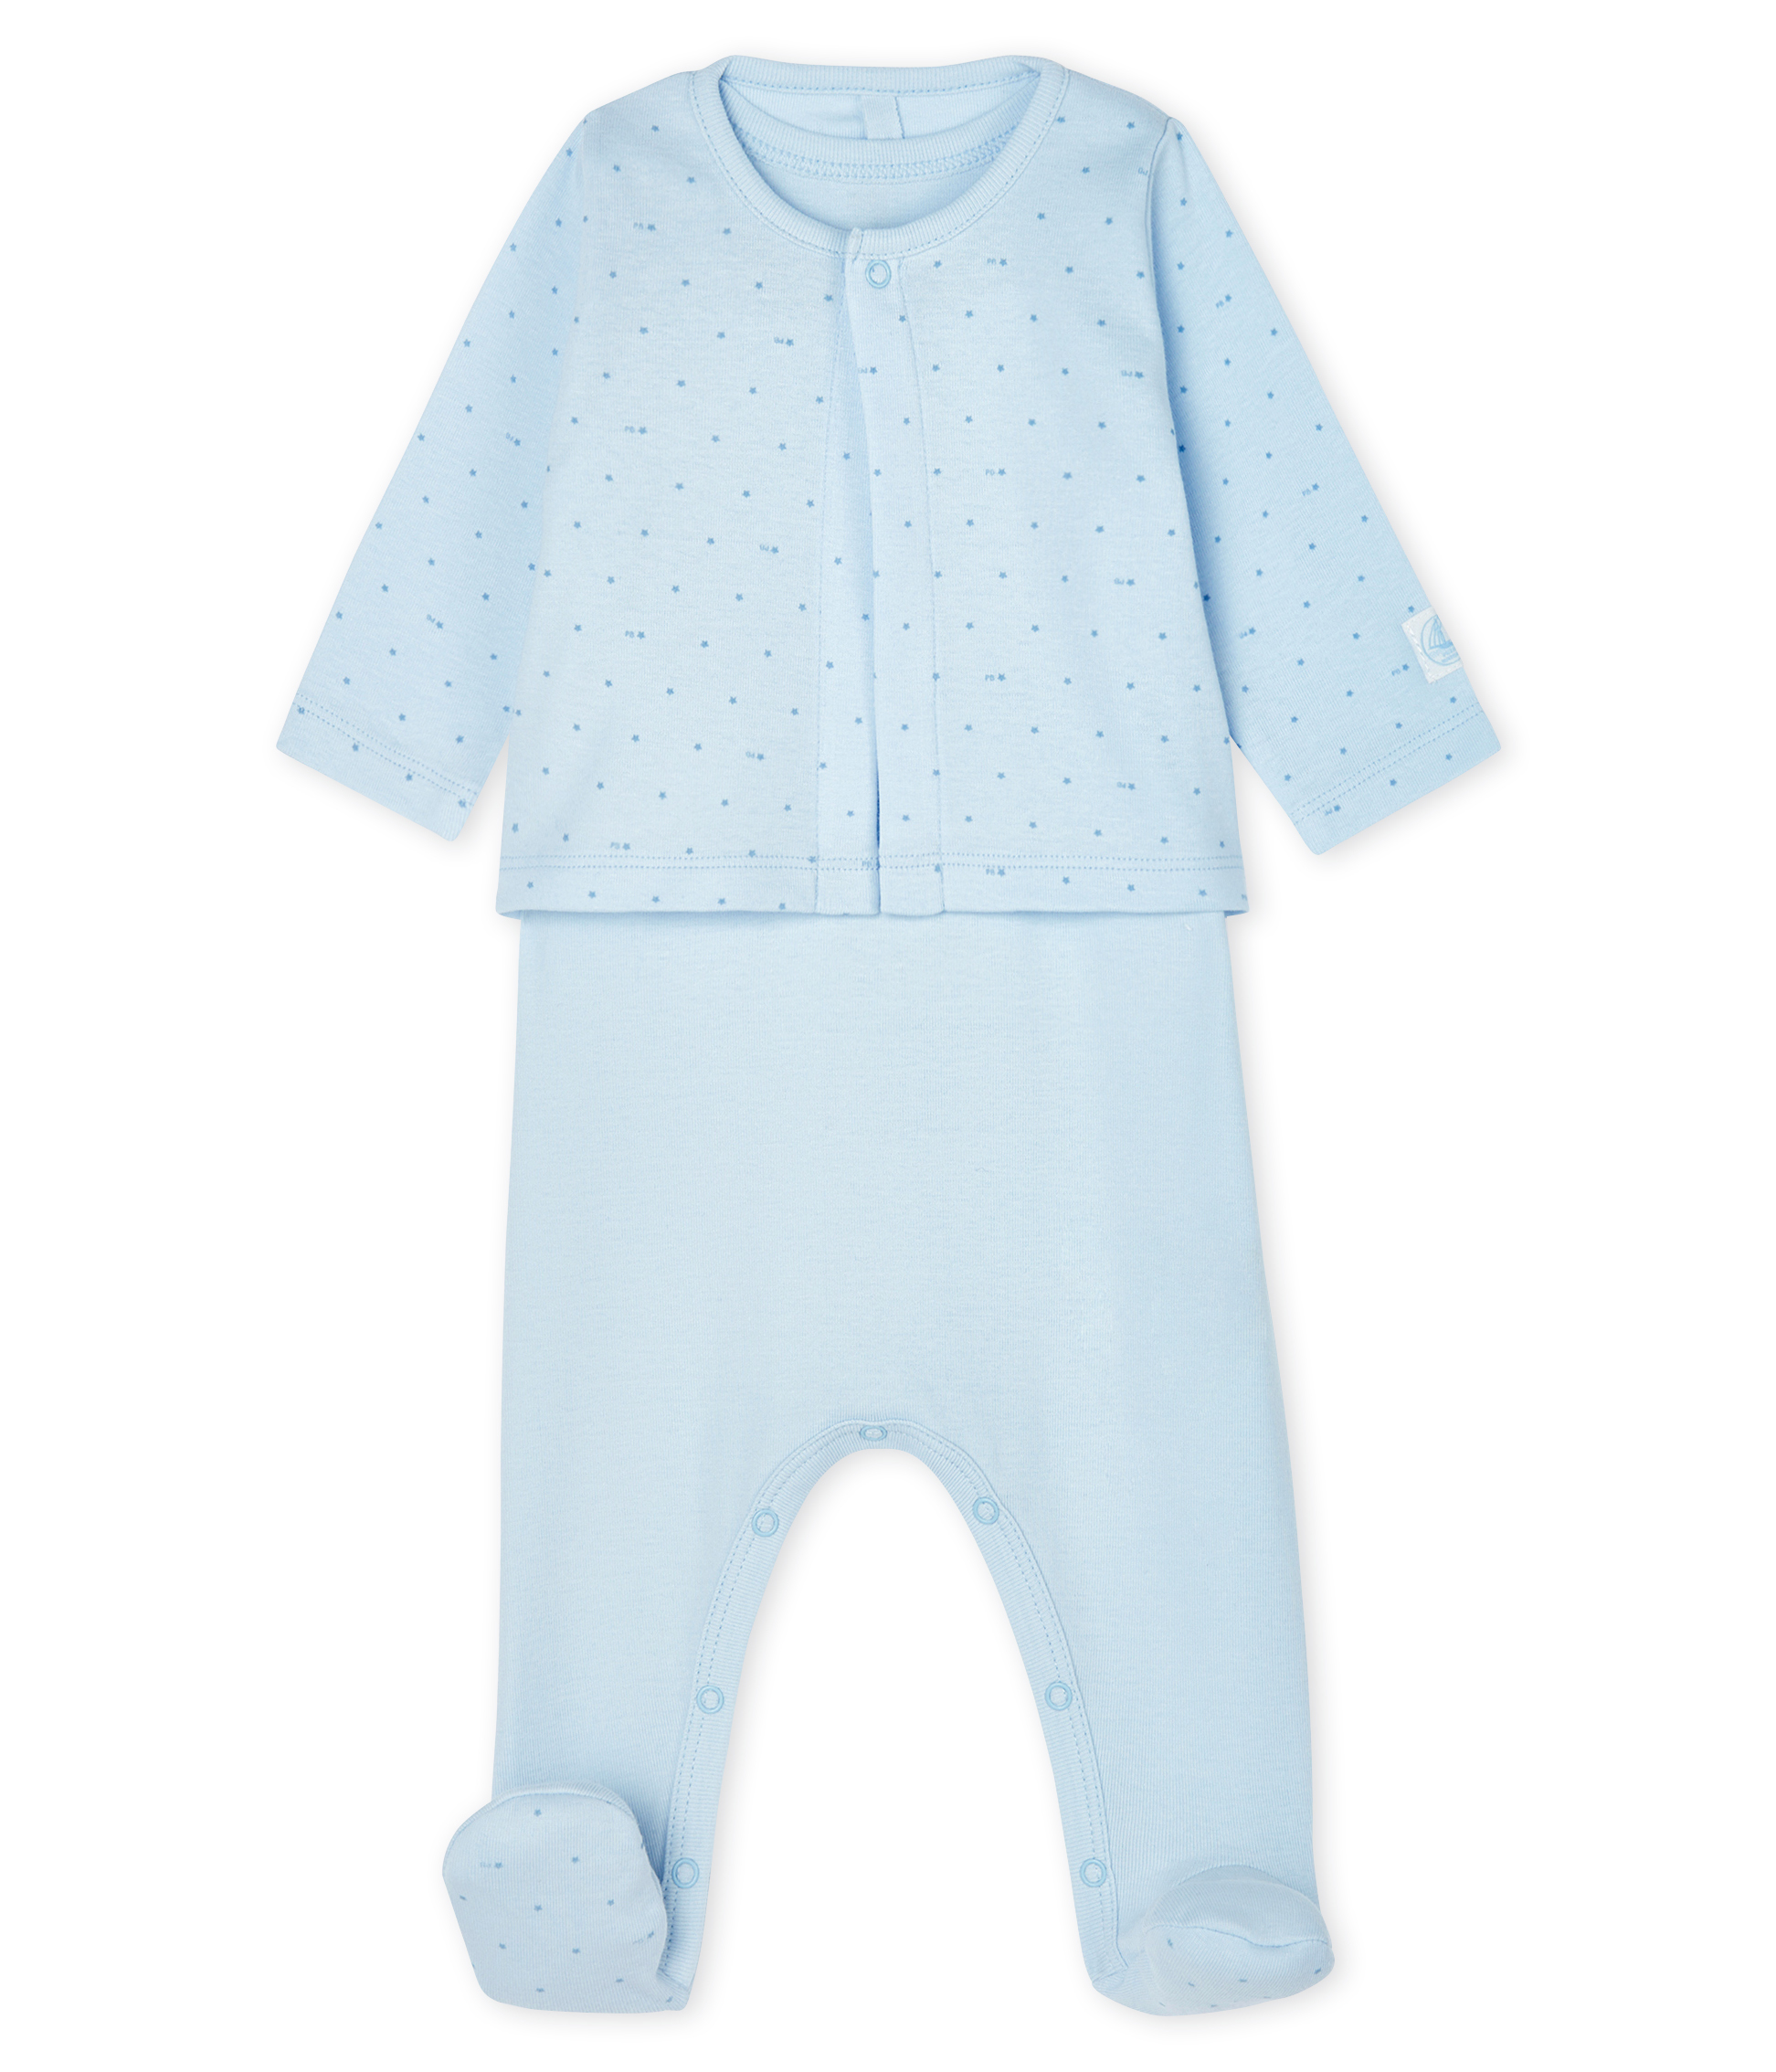 Babies' Ribbed Clothing - 2-Piece Set